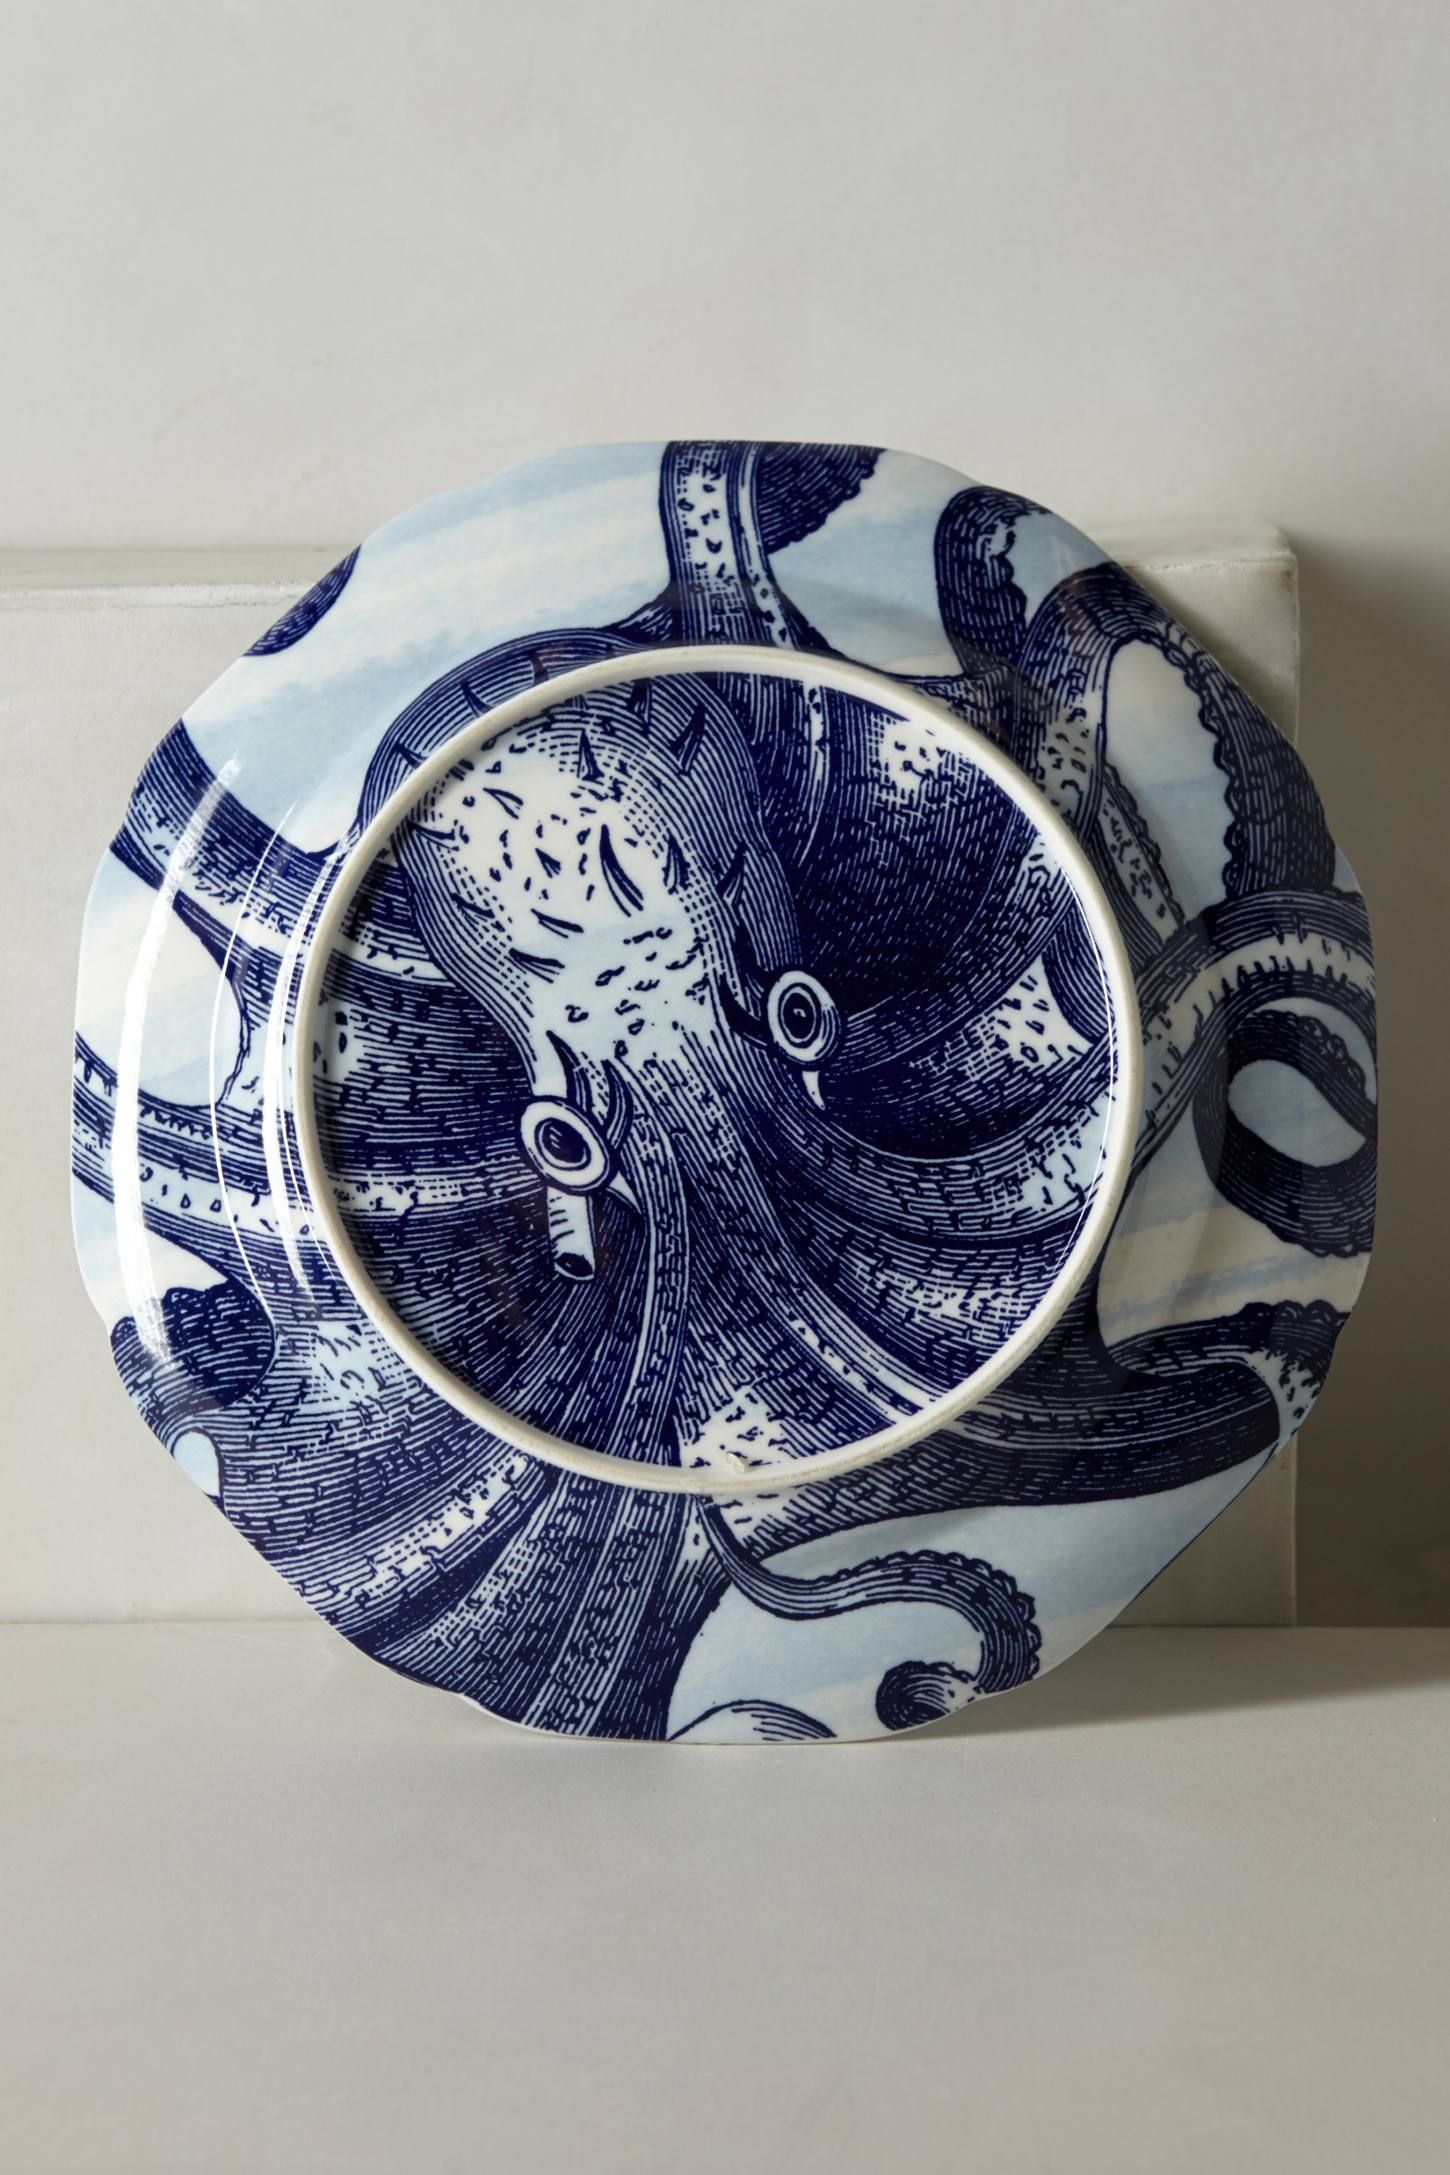 From The Deep Dinner Plate & From The Deep Dinner Plate | Dinnerware